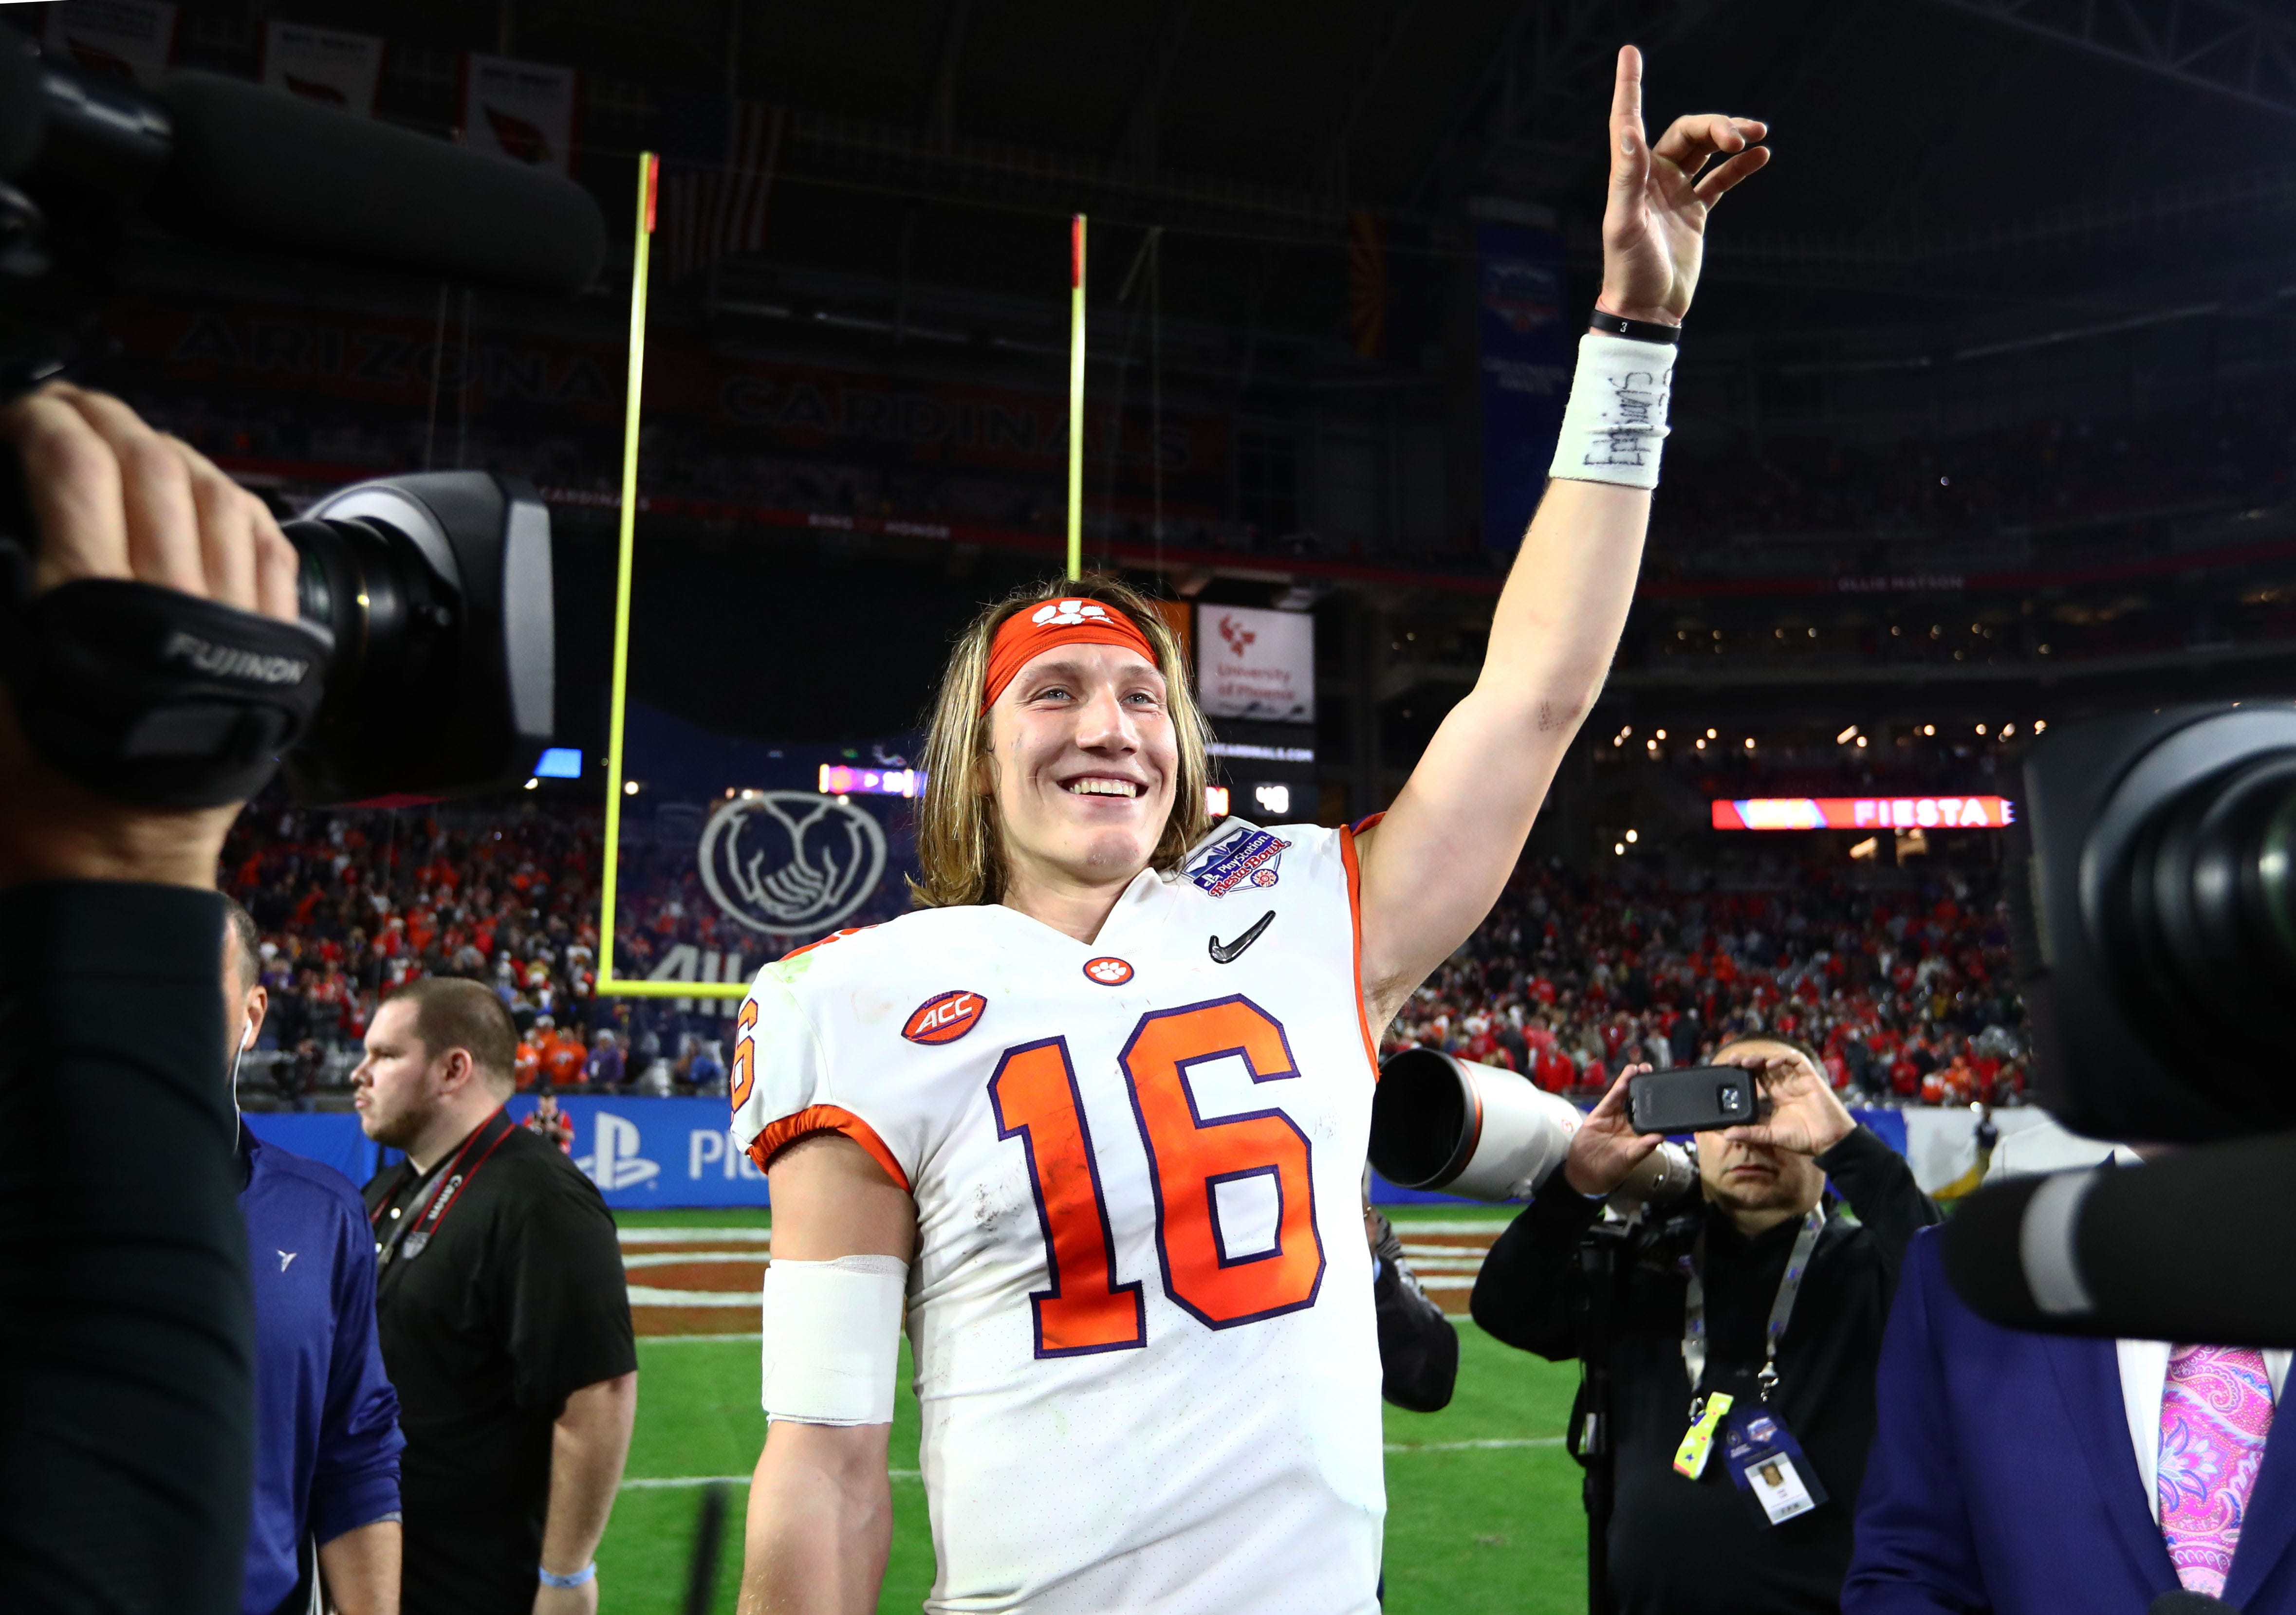 Opinion: Trevor Lawrence among factors that could make Jaguars most attractive NFL job of the offseason